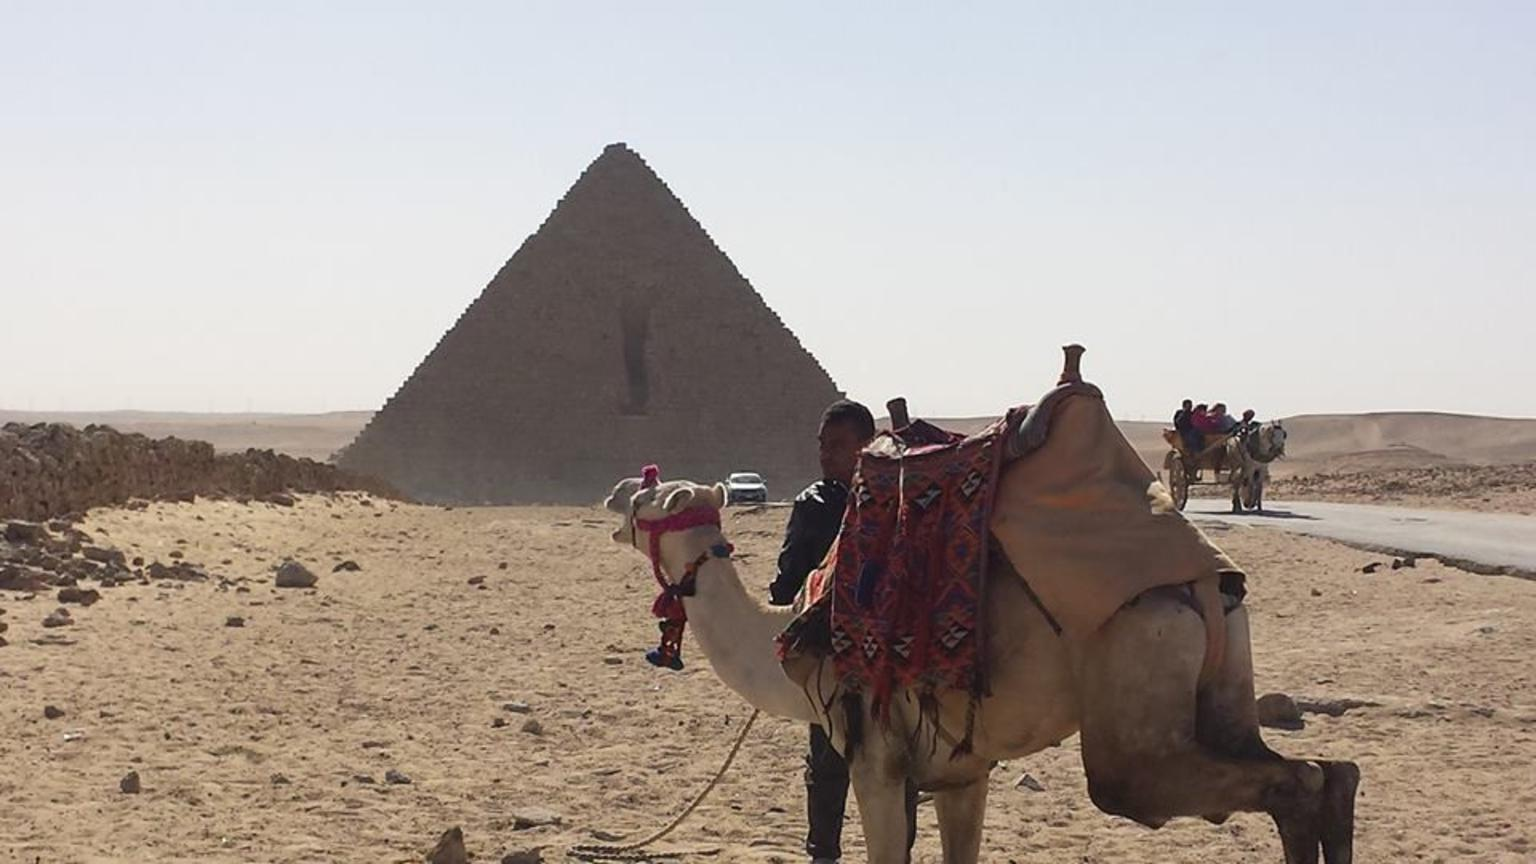 MÁS FOTOS, Trusted Private Half-Day Trip to Giza Pyramids with 30 M Camel-Riding